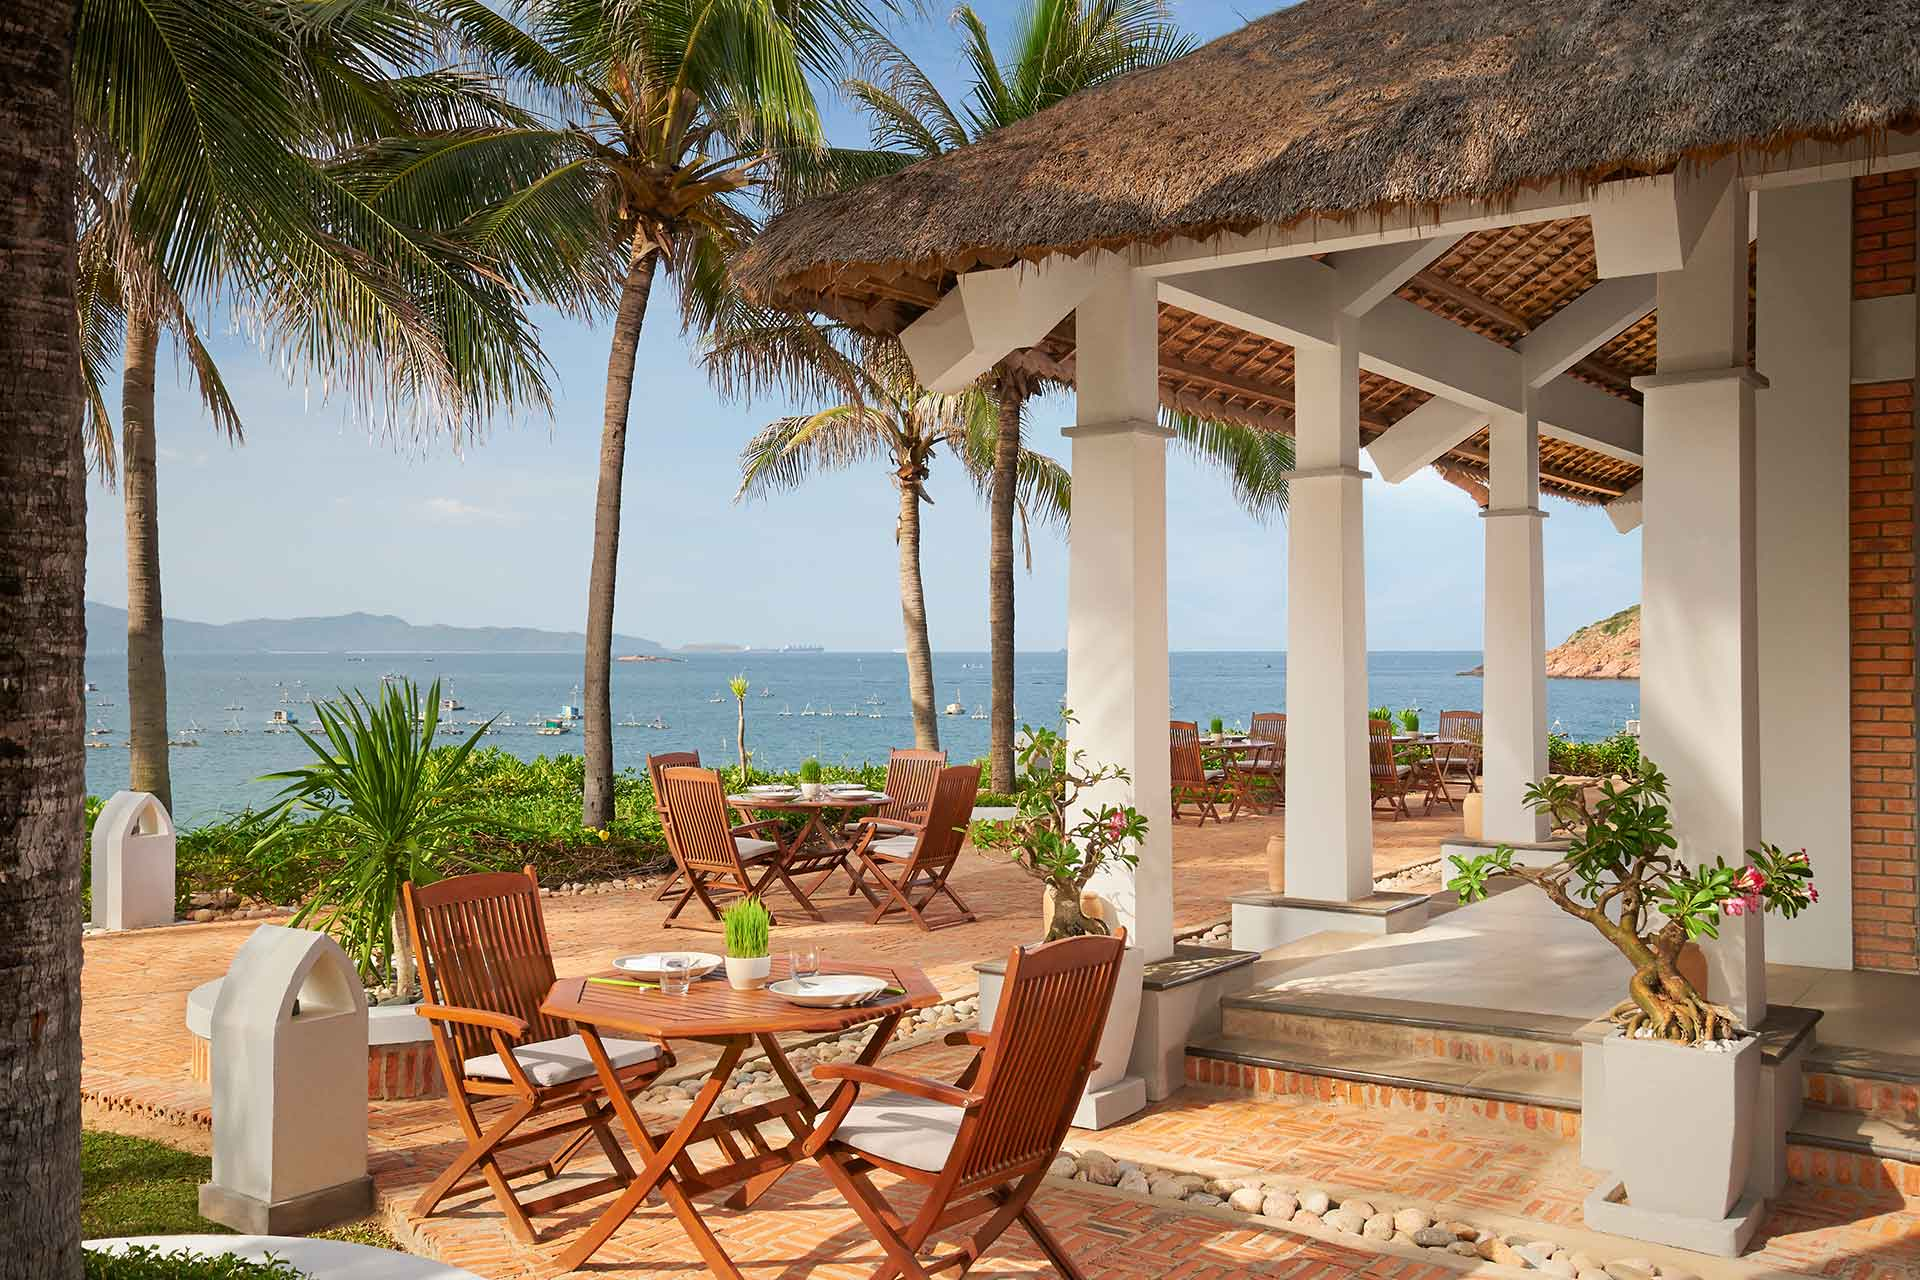 Sea view restaurant at AVANI resort in Quy Nhon